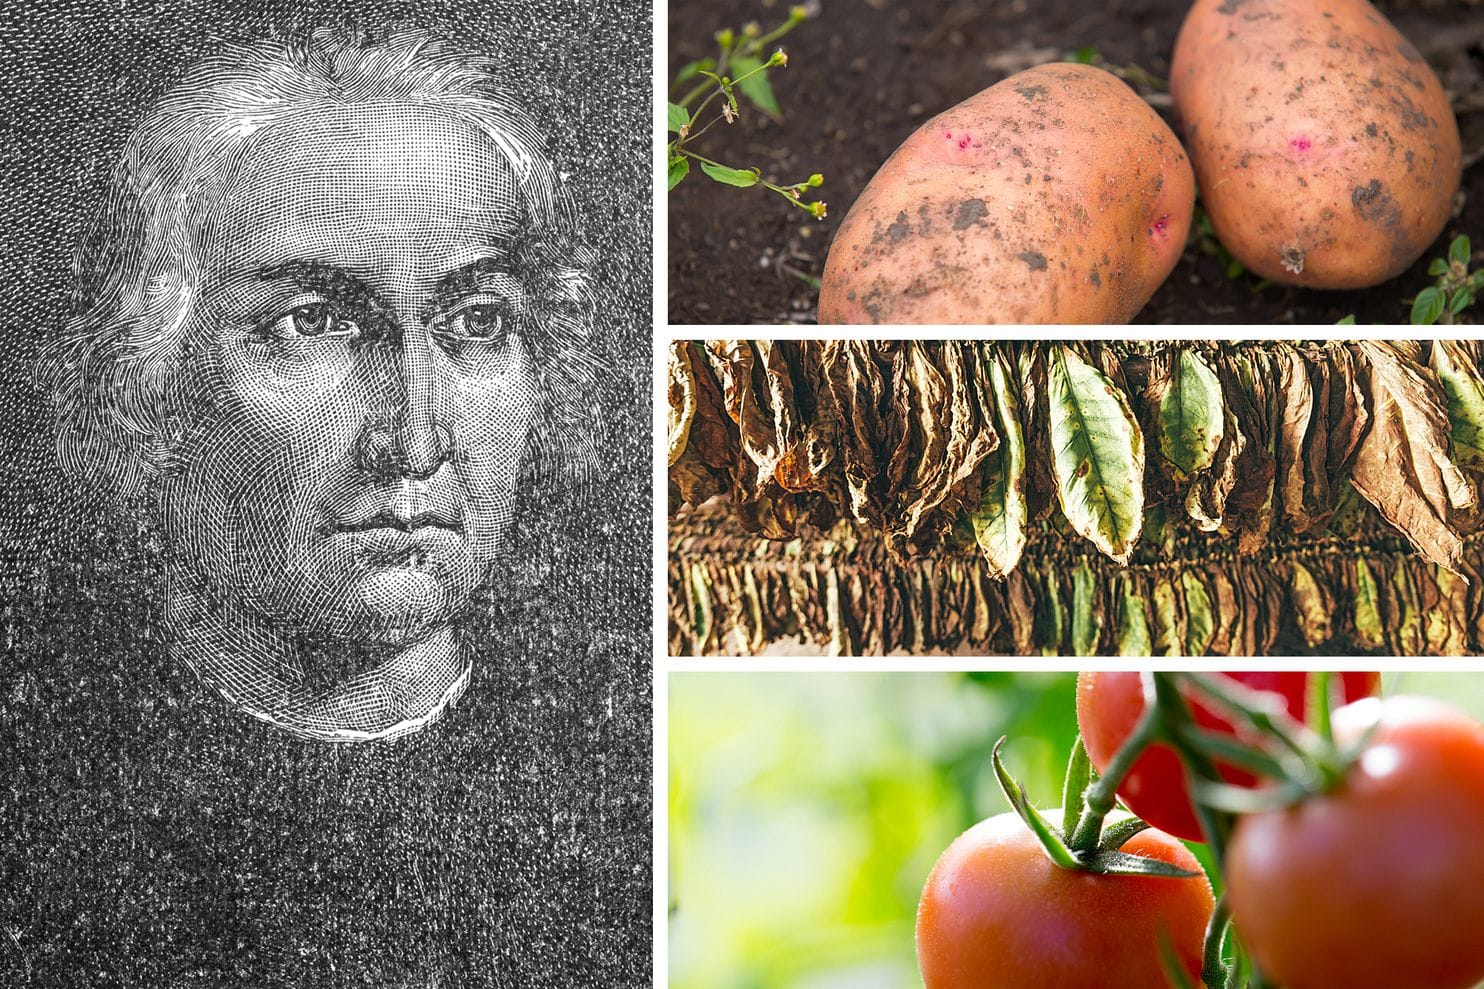 Clockwise from left: An engraved portrait of Christopher Columbus. Two potatoes in garden soil. Drying tobacco leaves. Homegrown tomatoes on the vine. (Engraving from